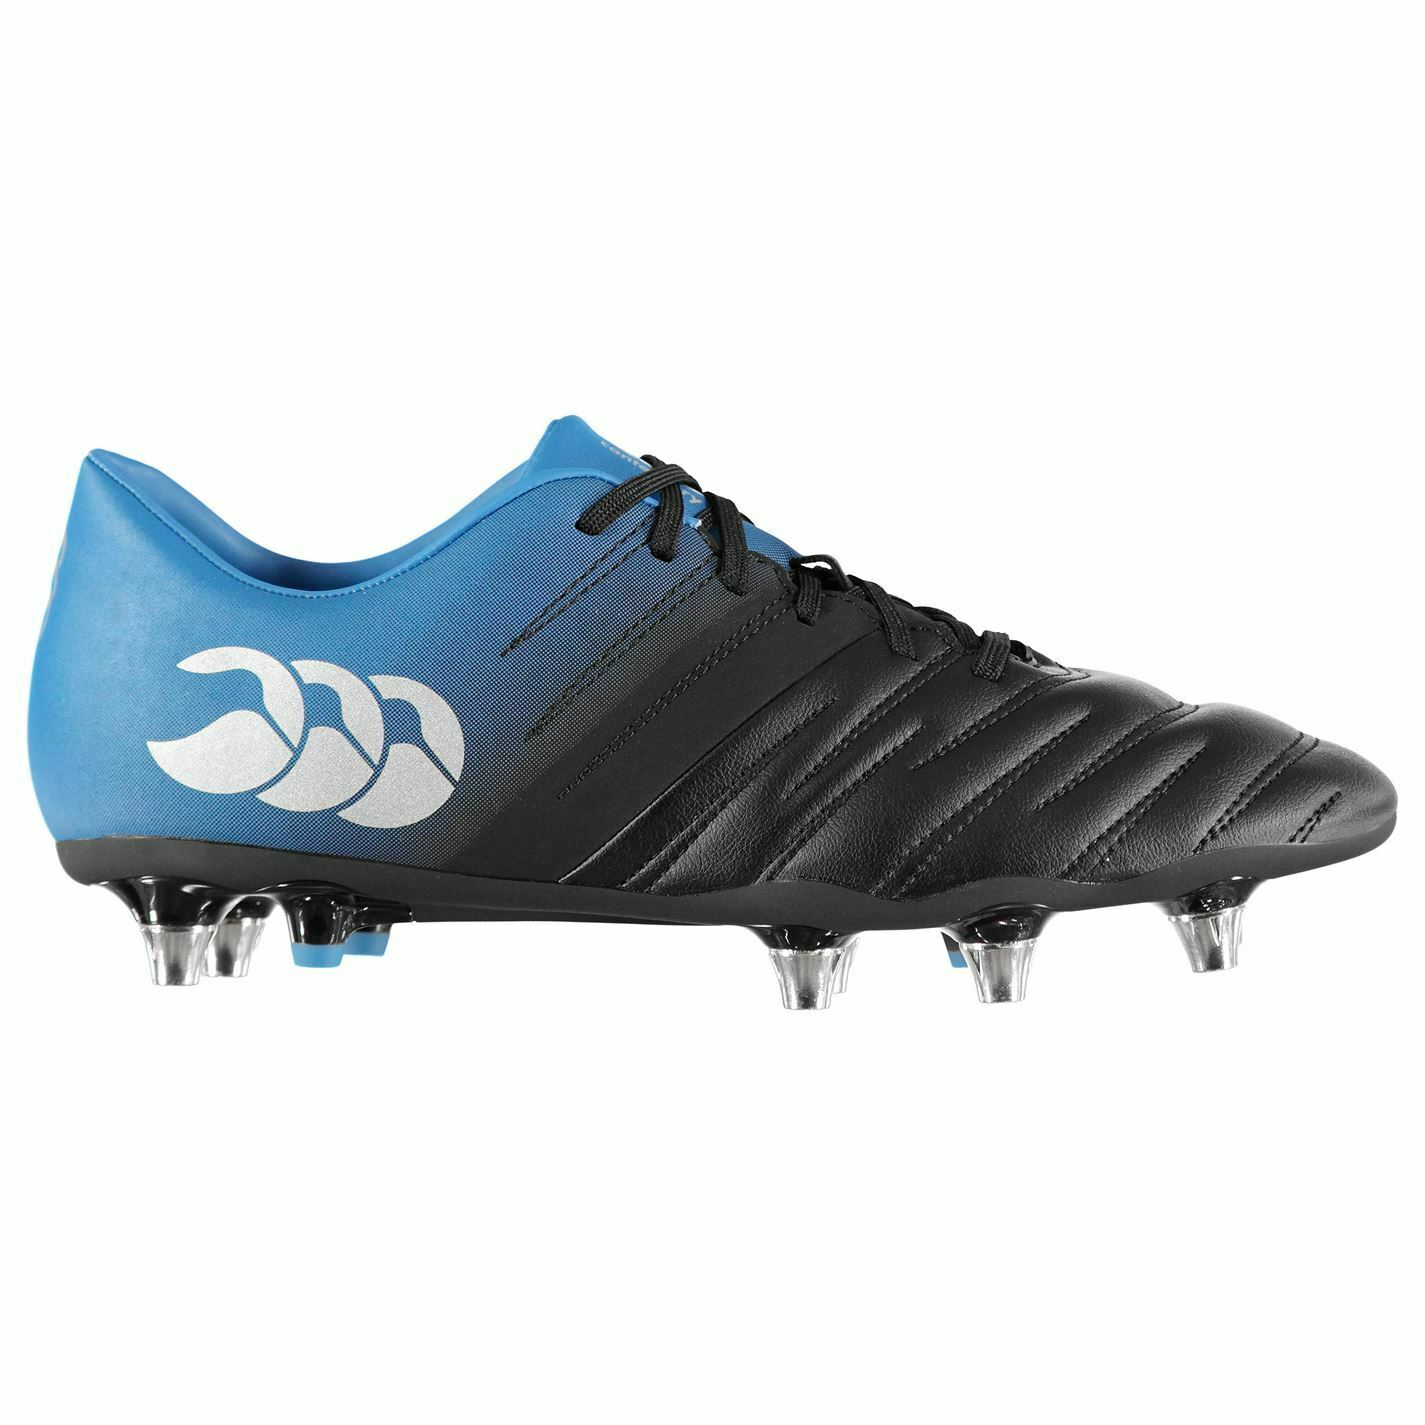 fad33c2001f Canterbury Phoenix 2.0 SG Rugby Boots Laces Fastened Mens Gents ...